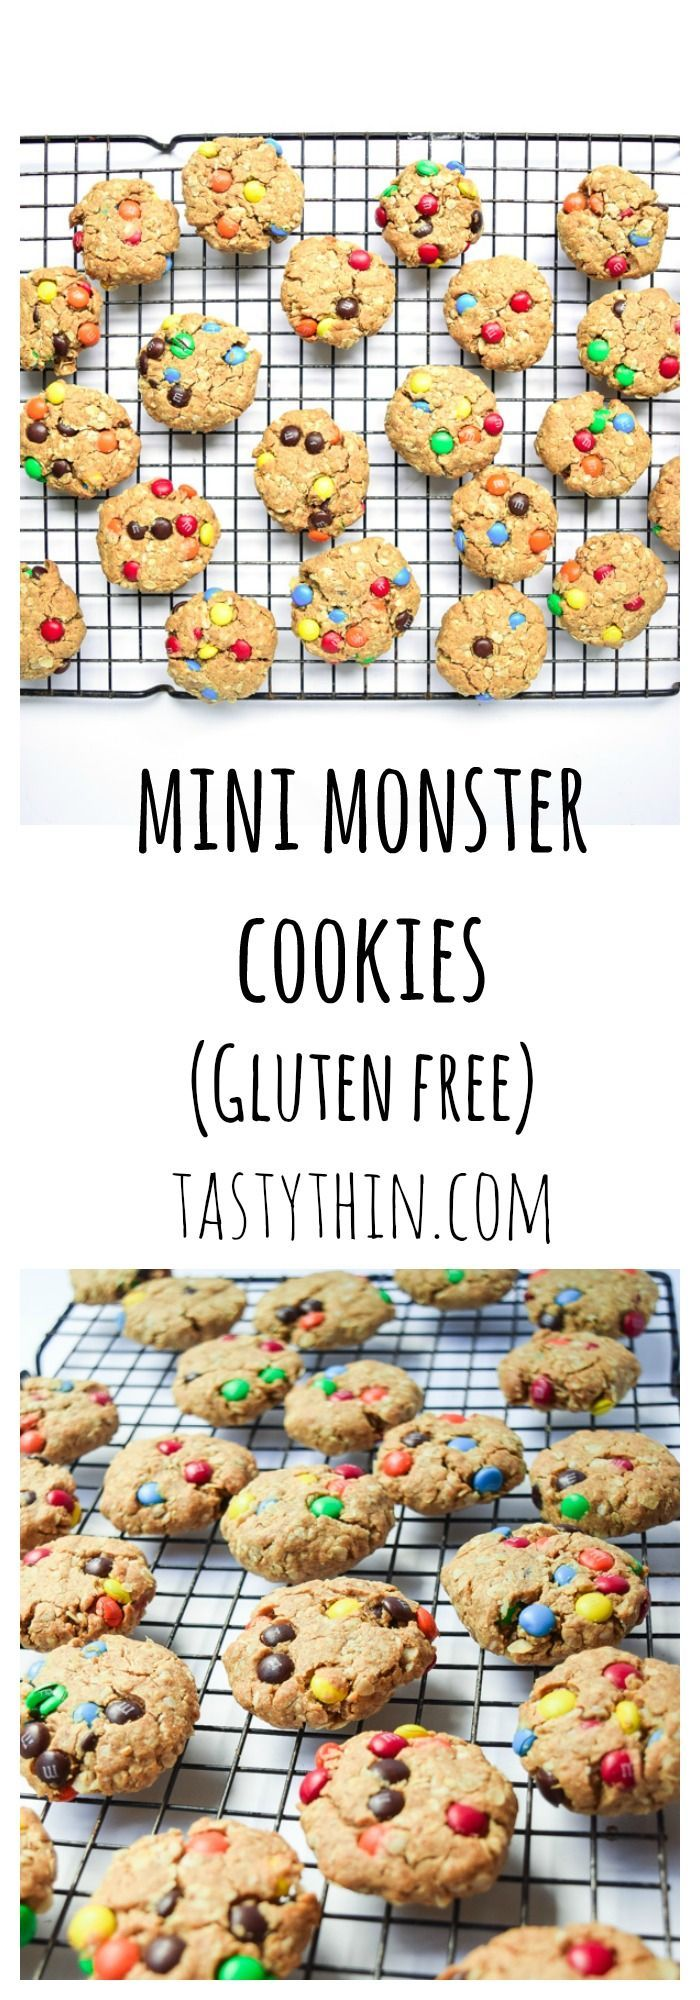 Mini Monster Cookies - With no butter/oil, refined sugar, or flour, these bite-sized Monster Cookies are the perfect healthier treat!   http://tastythin.com